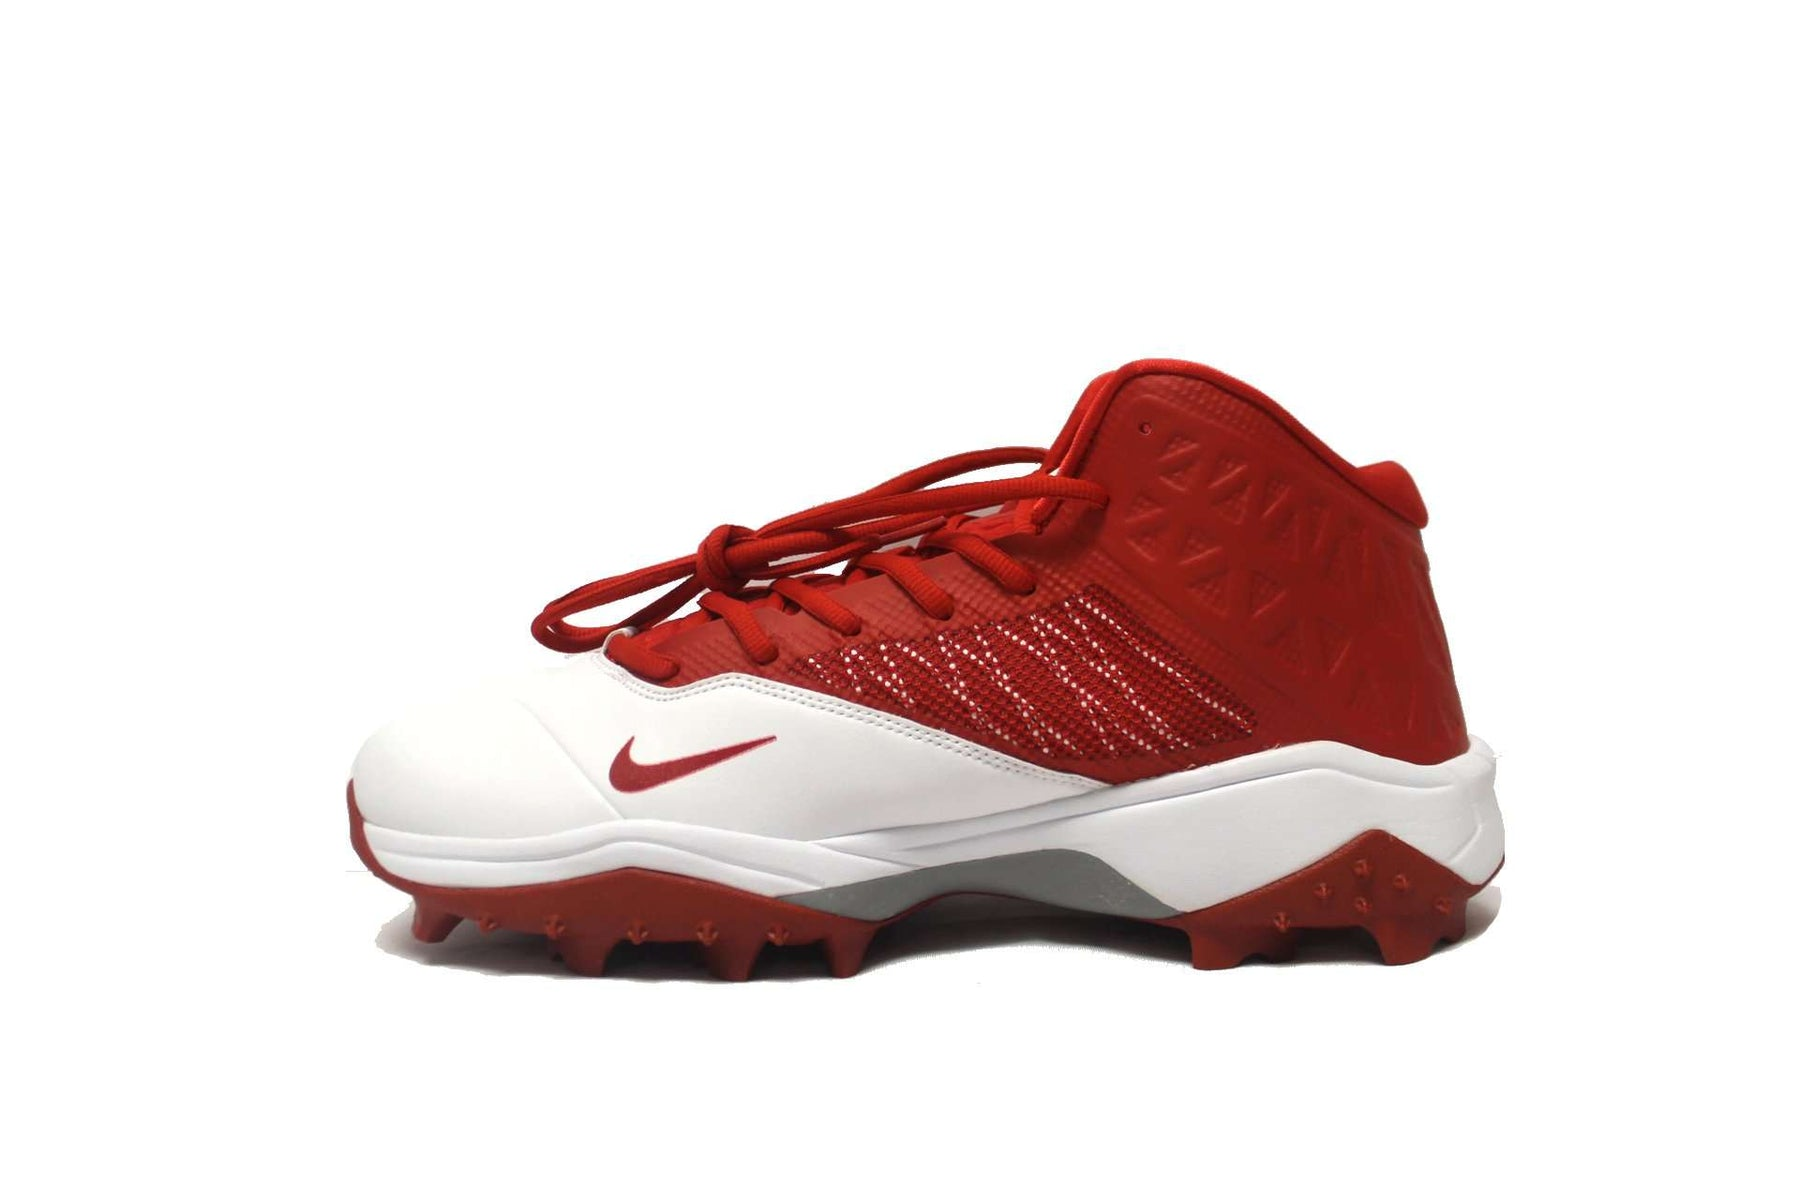 97d07d43810 ... Nike Zoom Code Elite Pro Shark W Football Cleats - League Outfitters ...